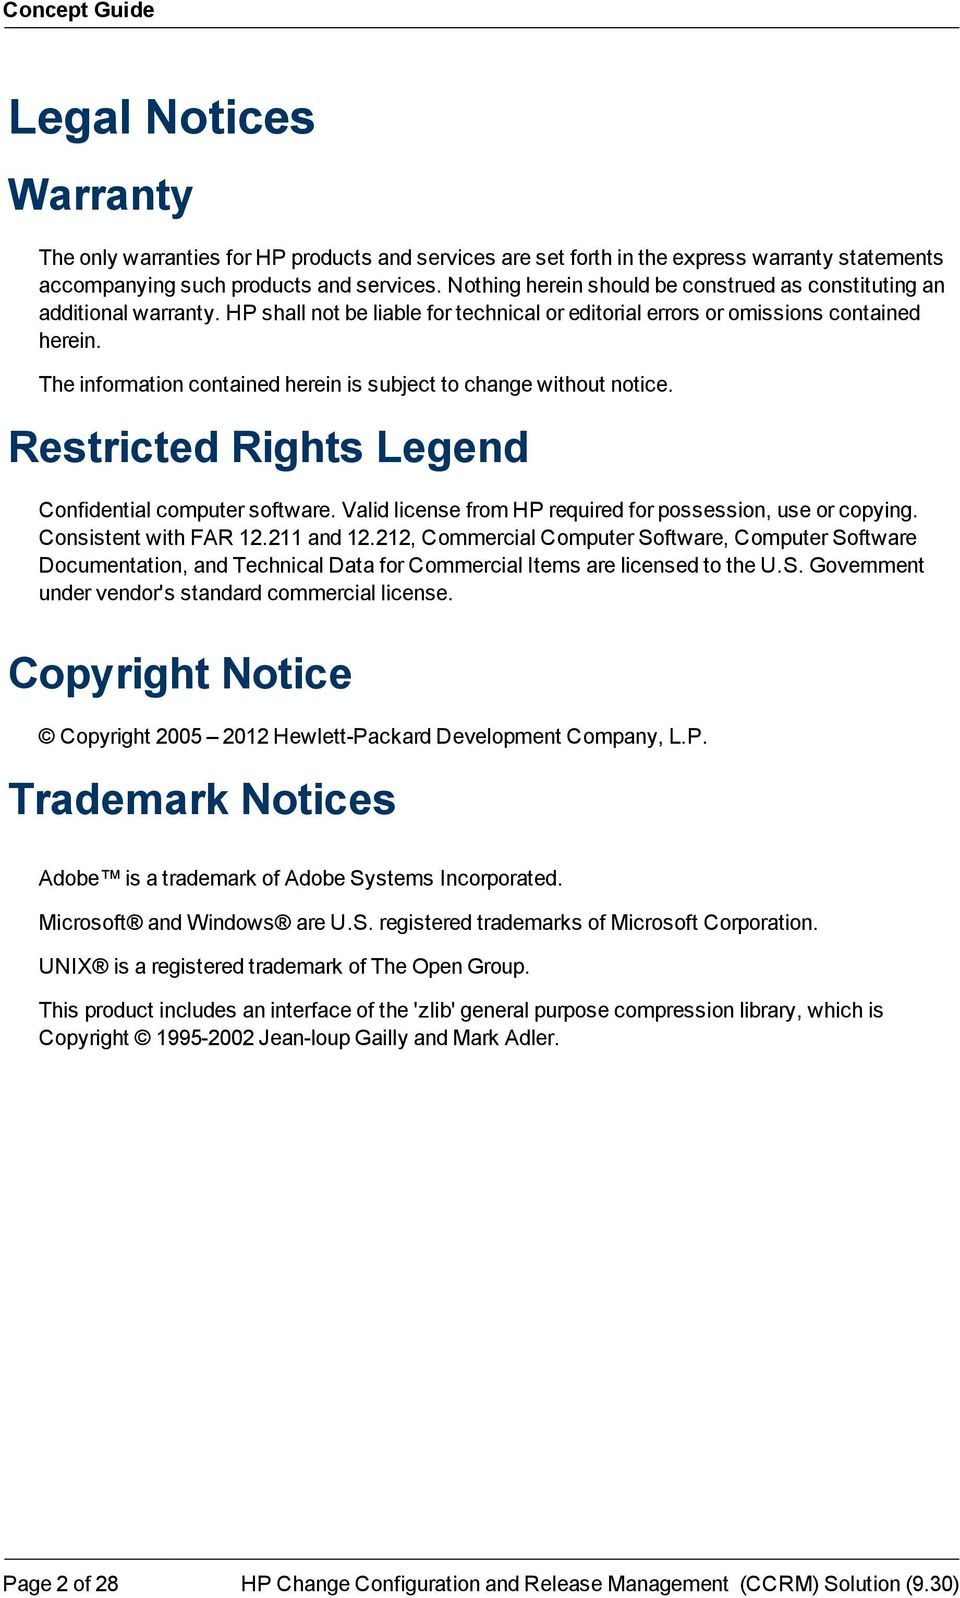 The information contained herein is subject to change without notice. Restricted Rights Legend Confidential computer software. Valid license from HP required for possession, use or copying.